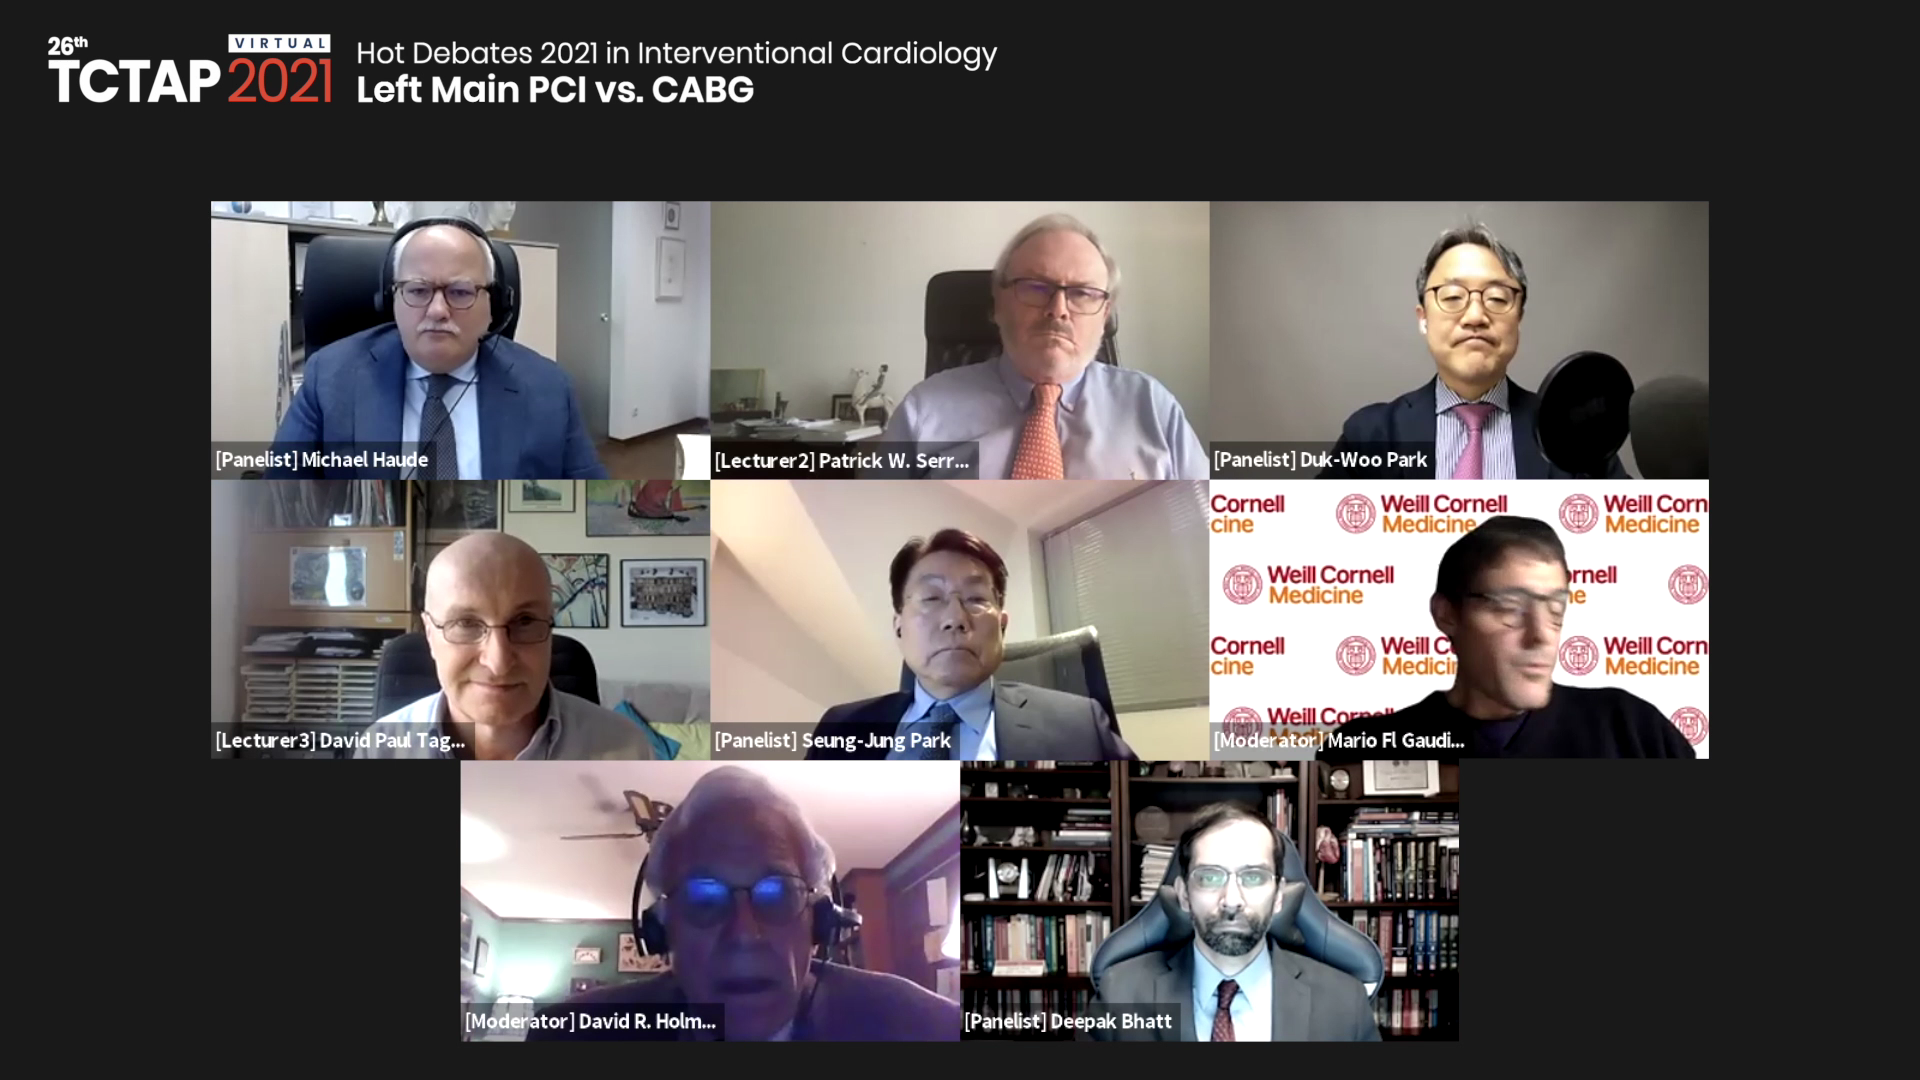 [TCTAP 2021 Virtual] Hot Debates 2021 in Interventional Cardiology - Left Main PCI vs. CABG